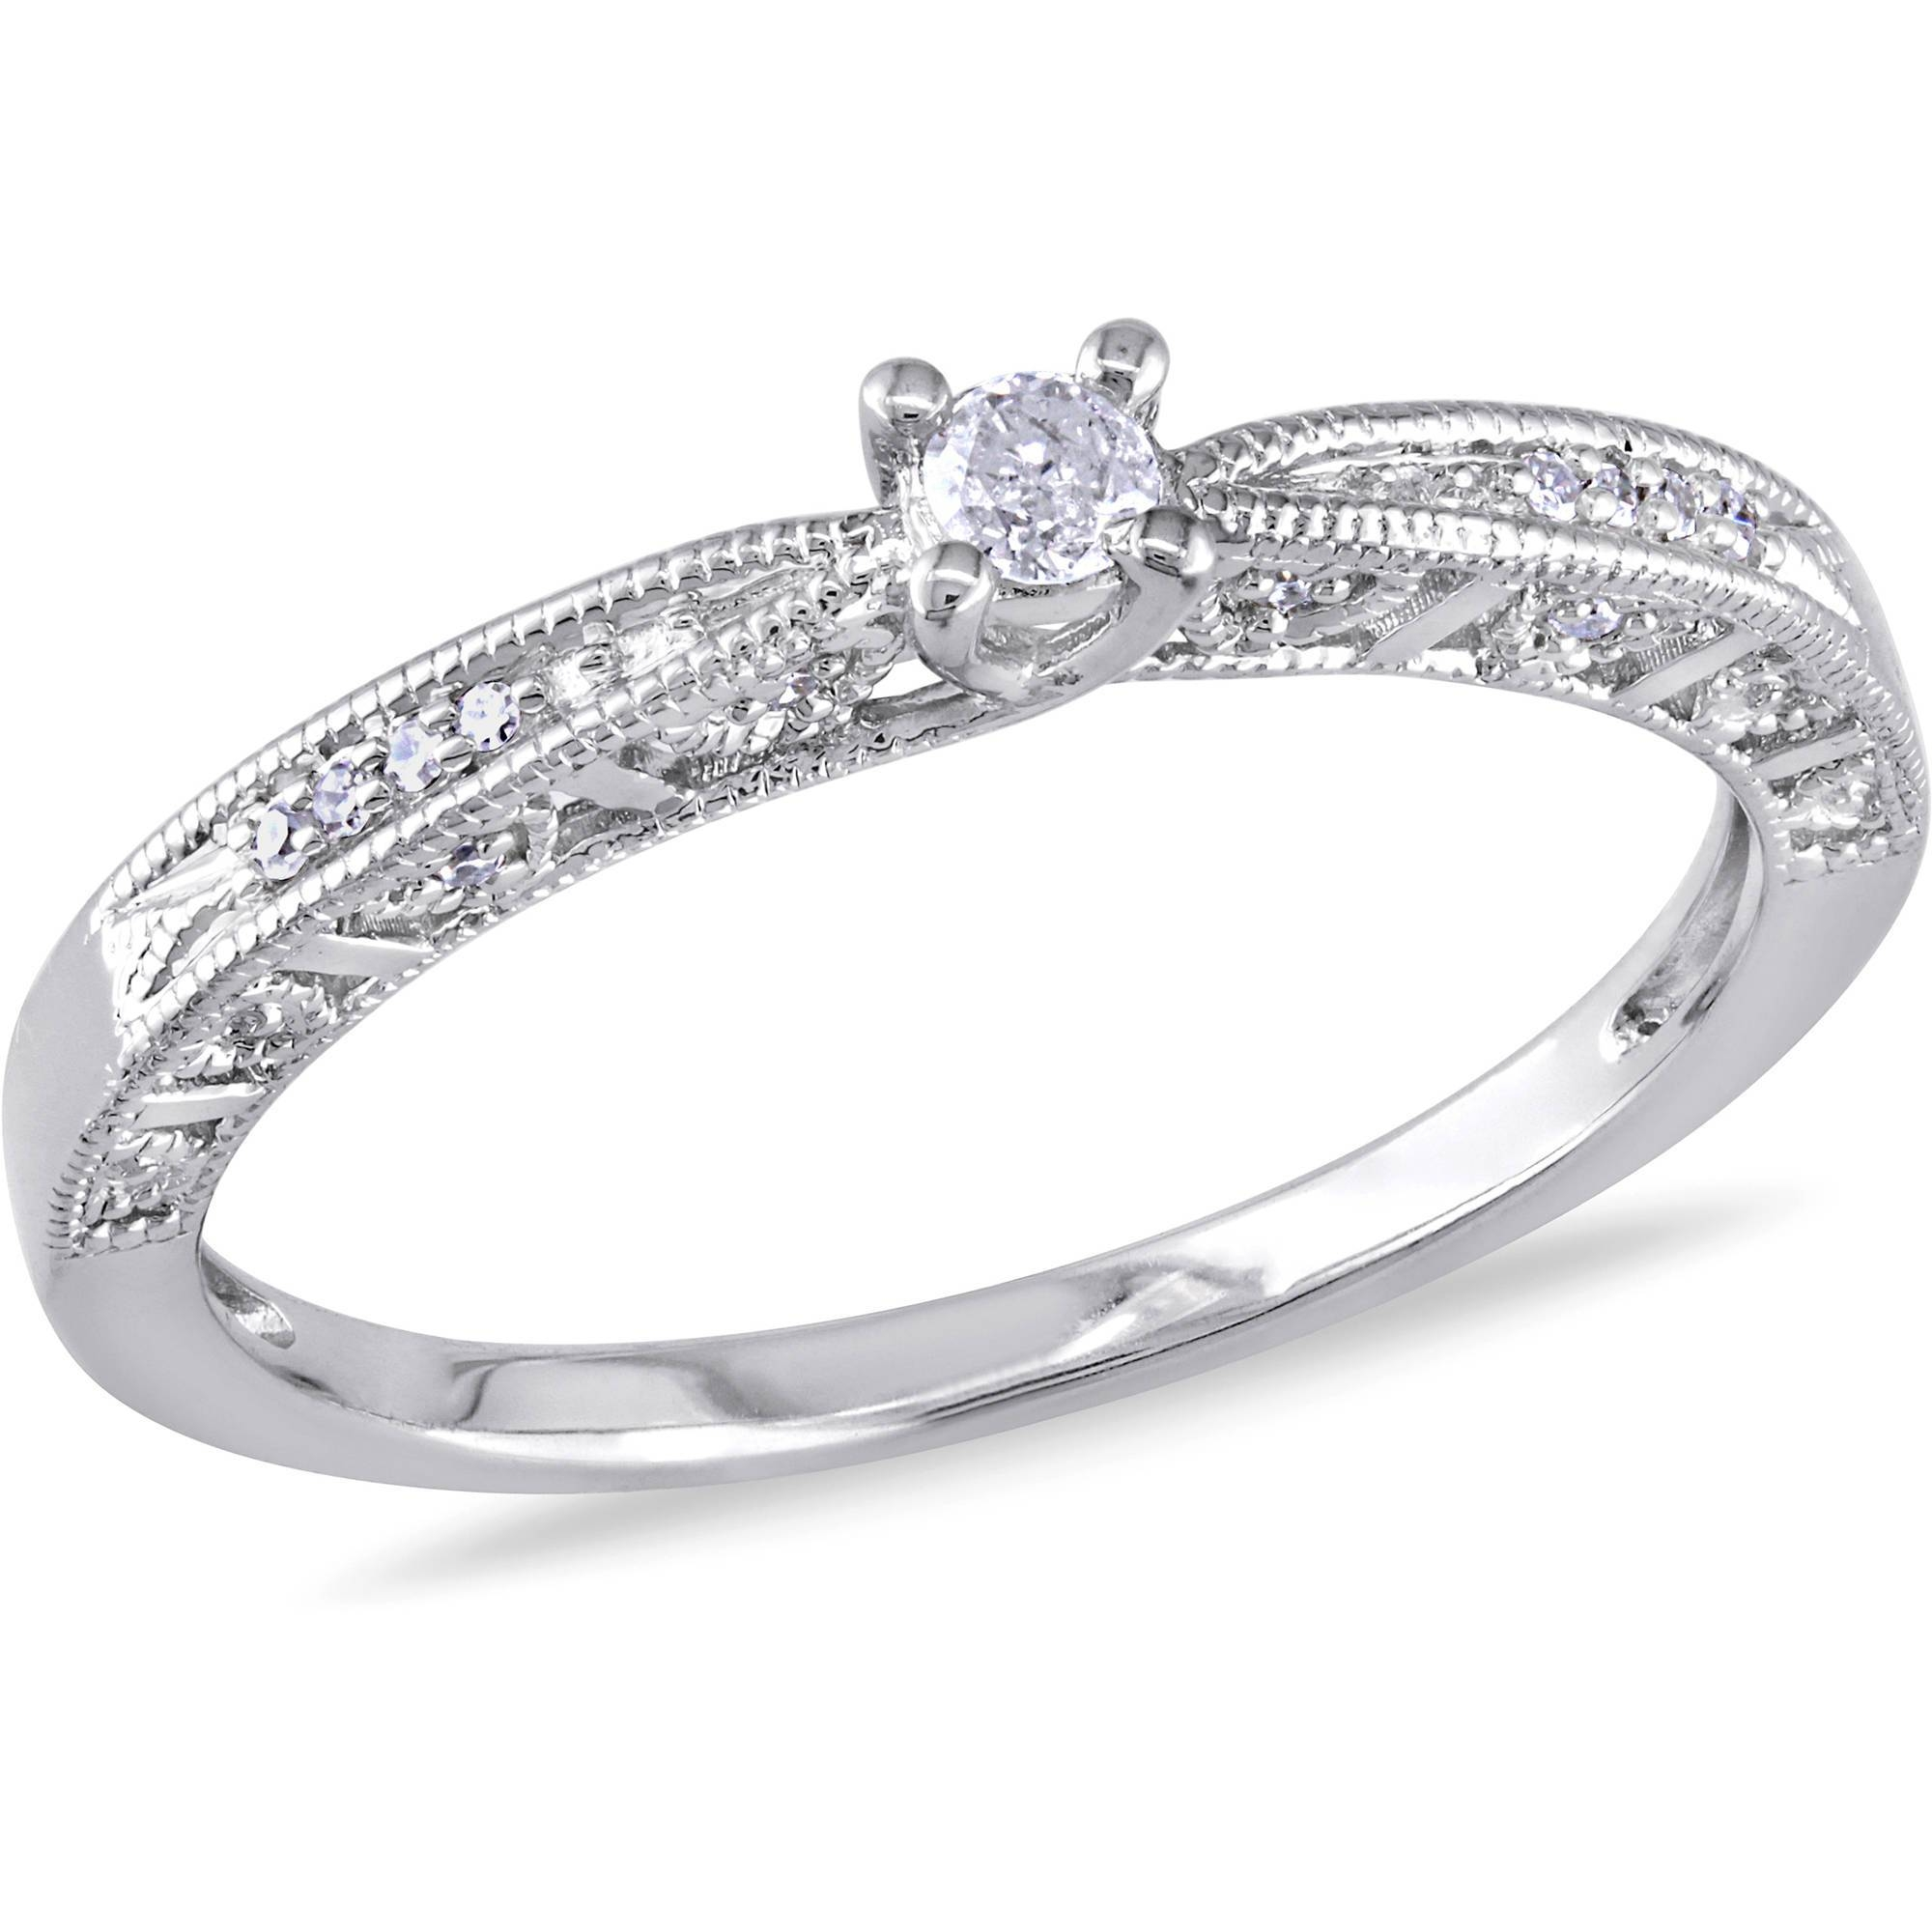 Miabella 1 10 Carat Tw Diamond Sterling Silver Engagement Ring With Walmart Mens Wedding Bands